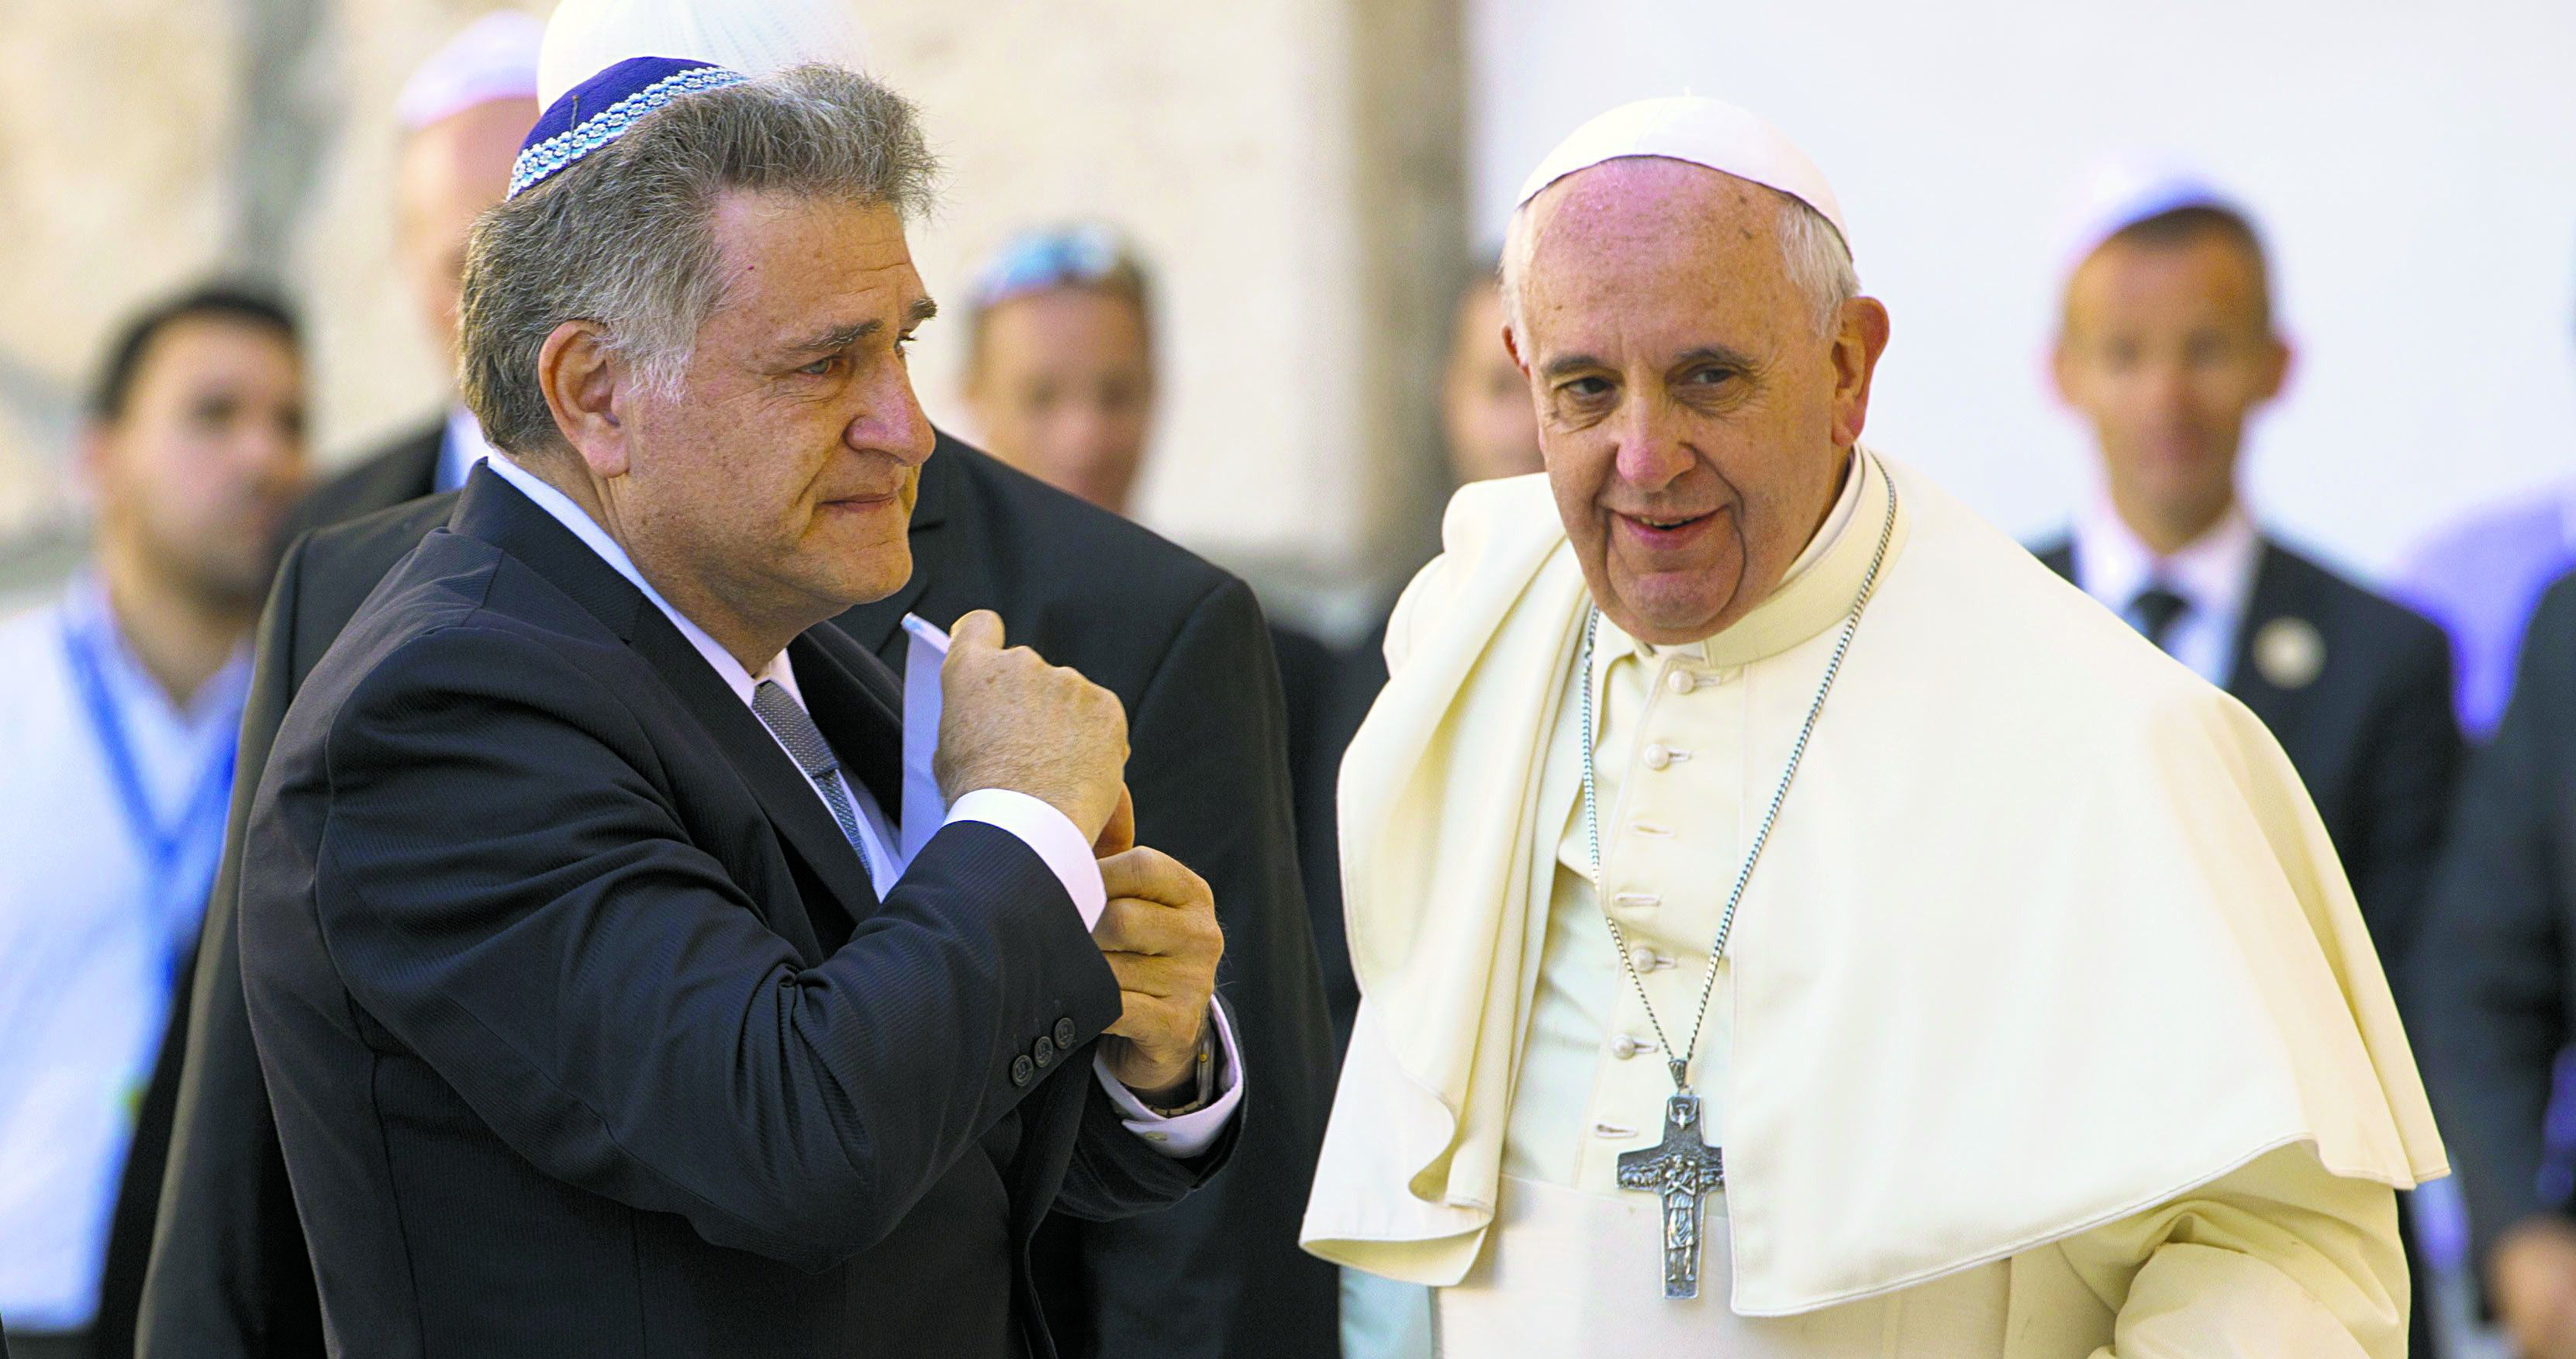 Compadres:  Pope Francis with his longtime friend, Rabbi Abraham Skorka, following the pope's May 2014 visit to the Western Wall in Jerusalem.